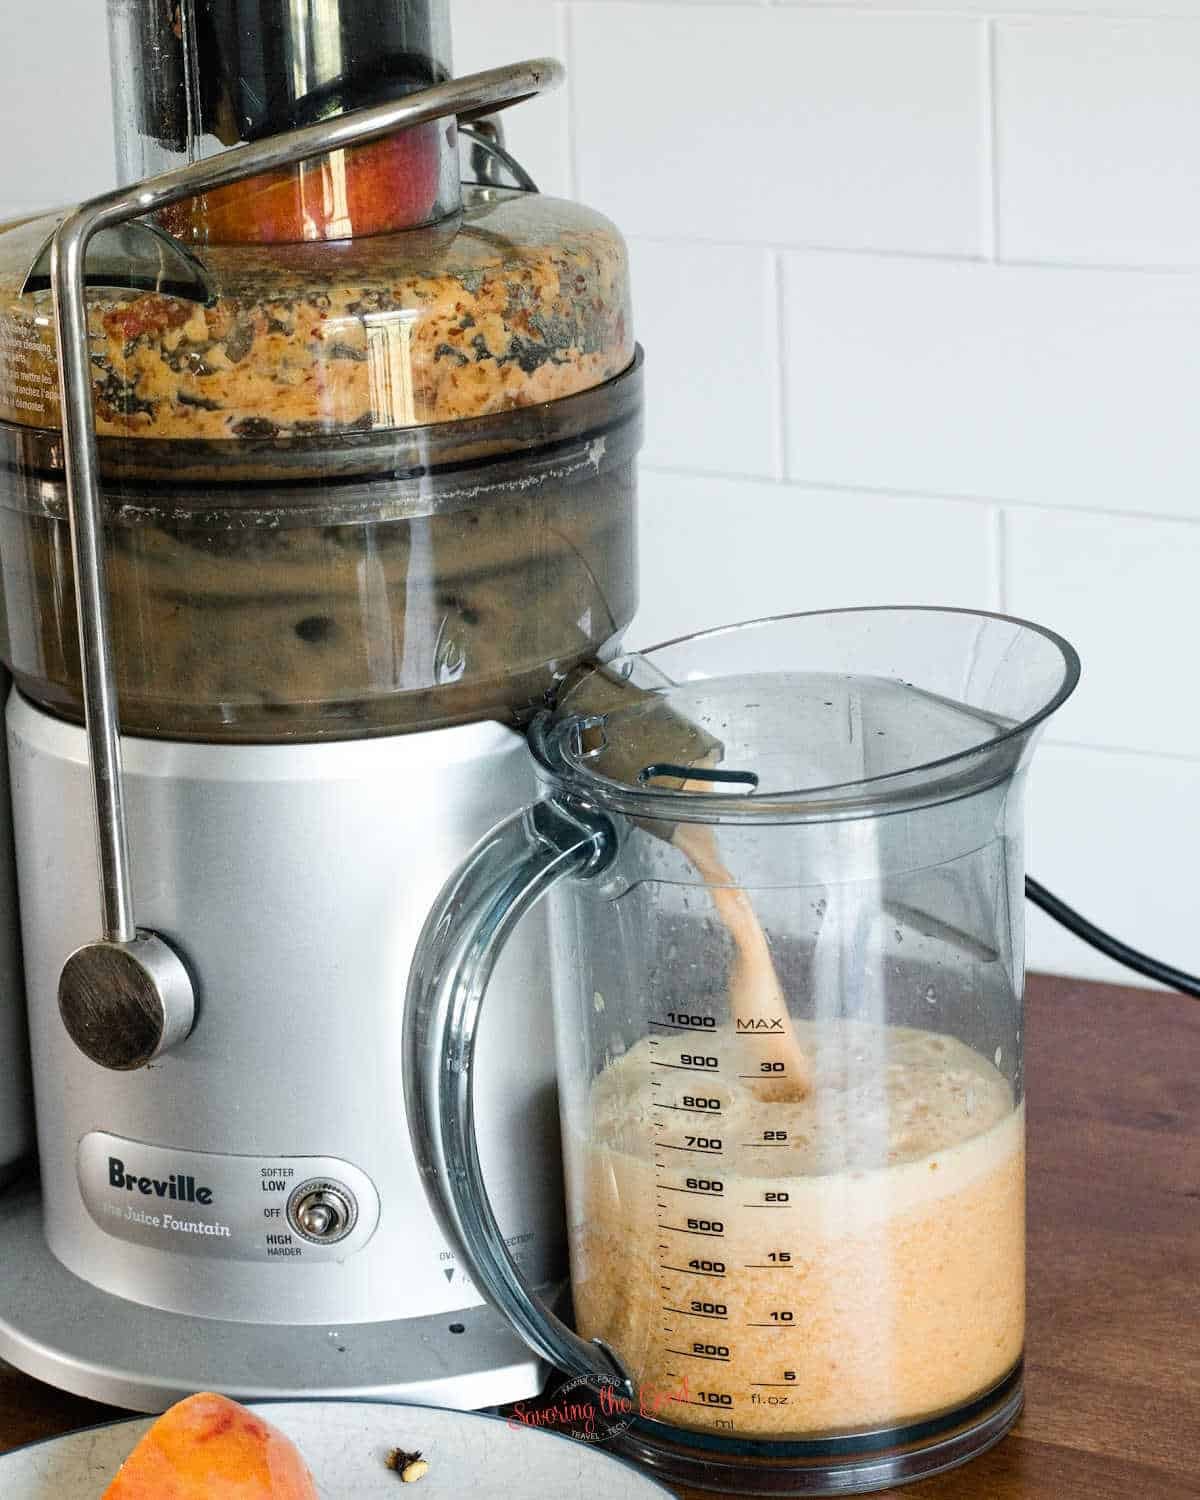 peaches being juiced in a breville fresh juice fountain, white tile backsplash in the background